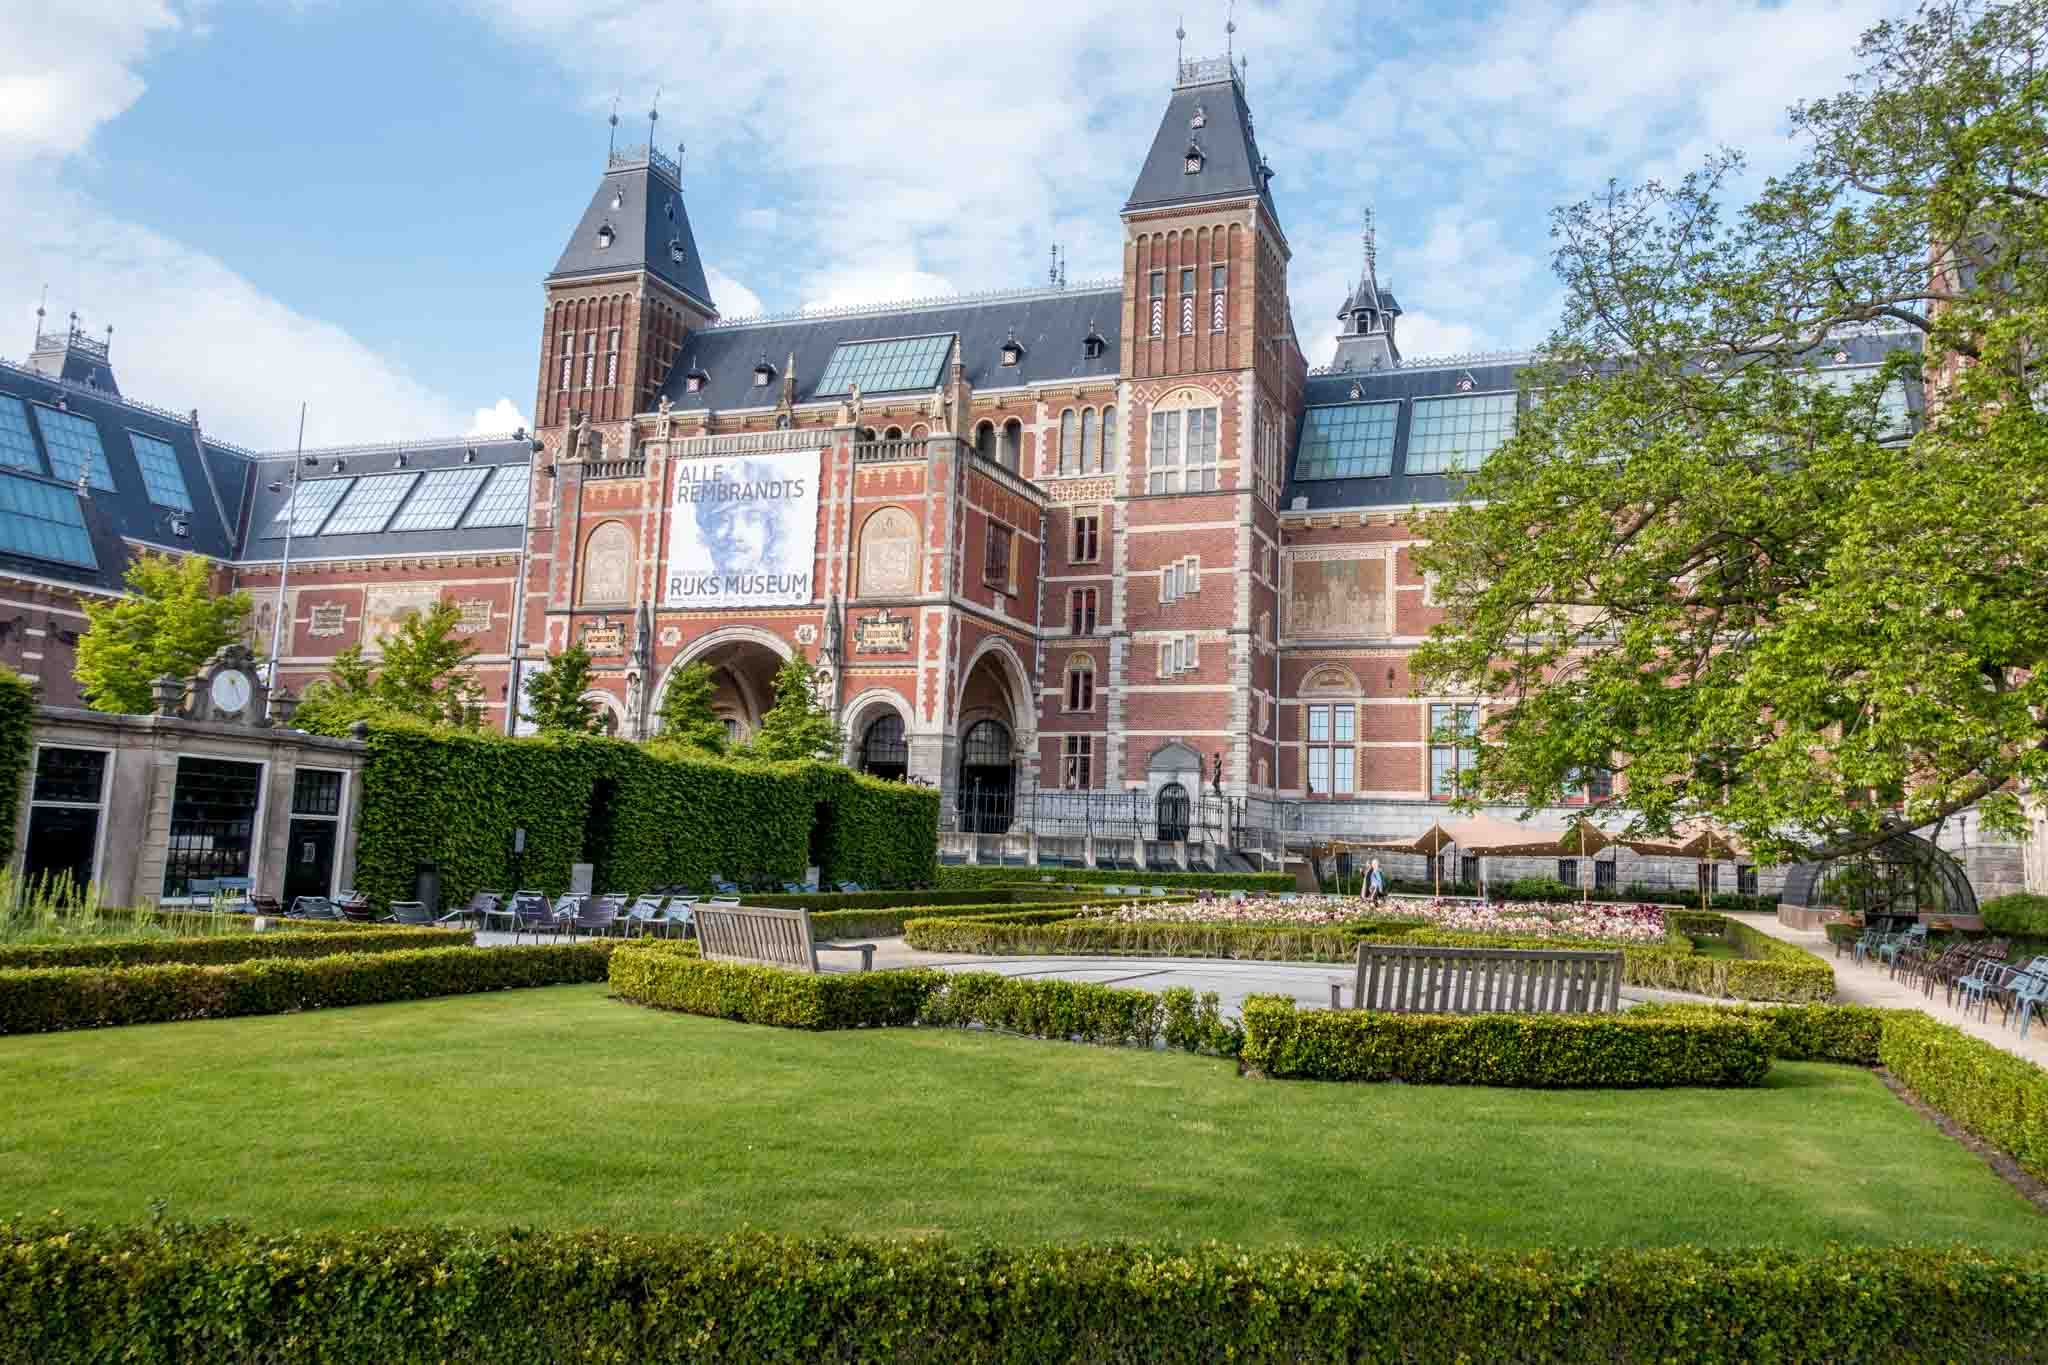 Large brick building with gardens in Amsterdam, the Rijksmuseum